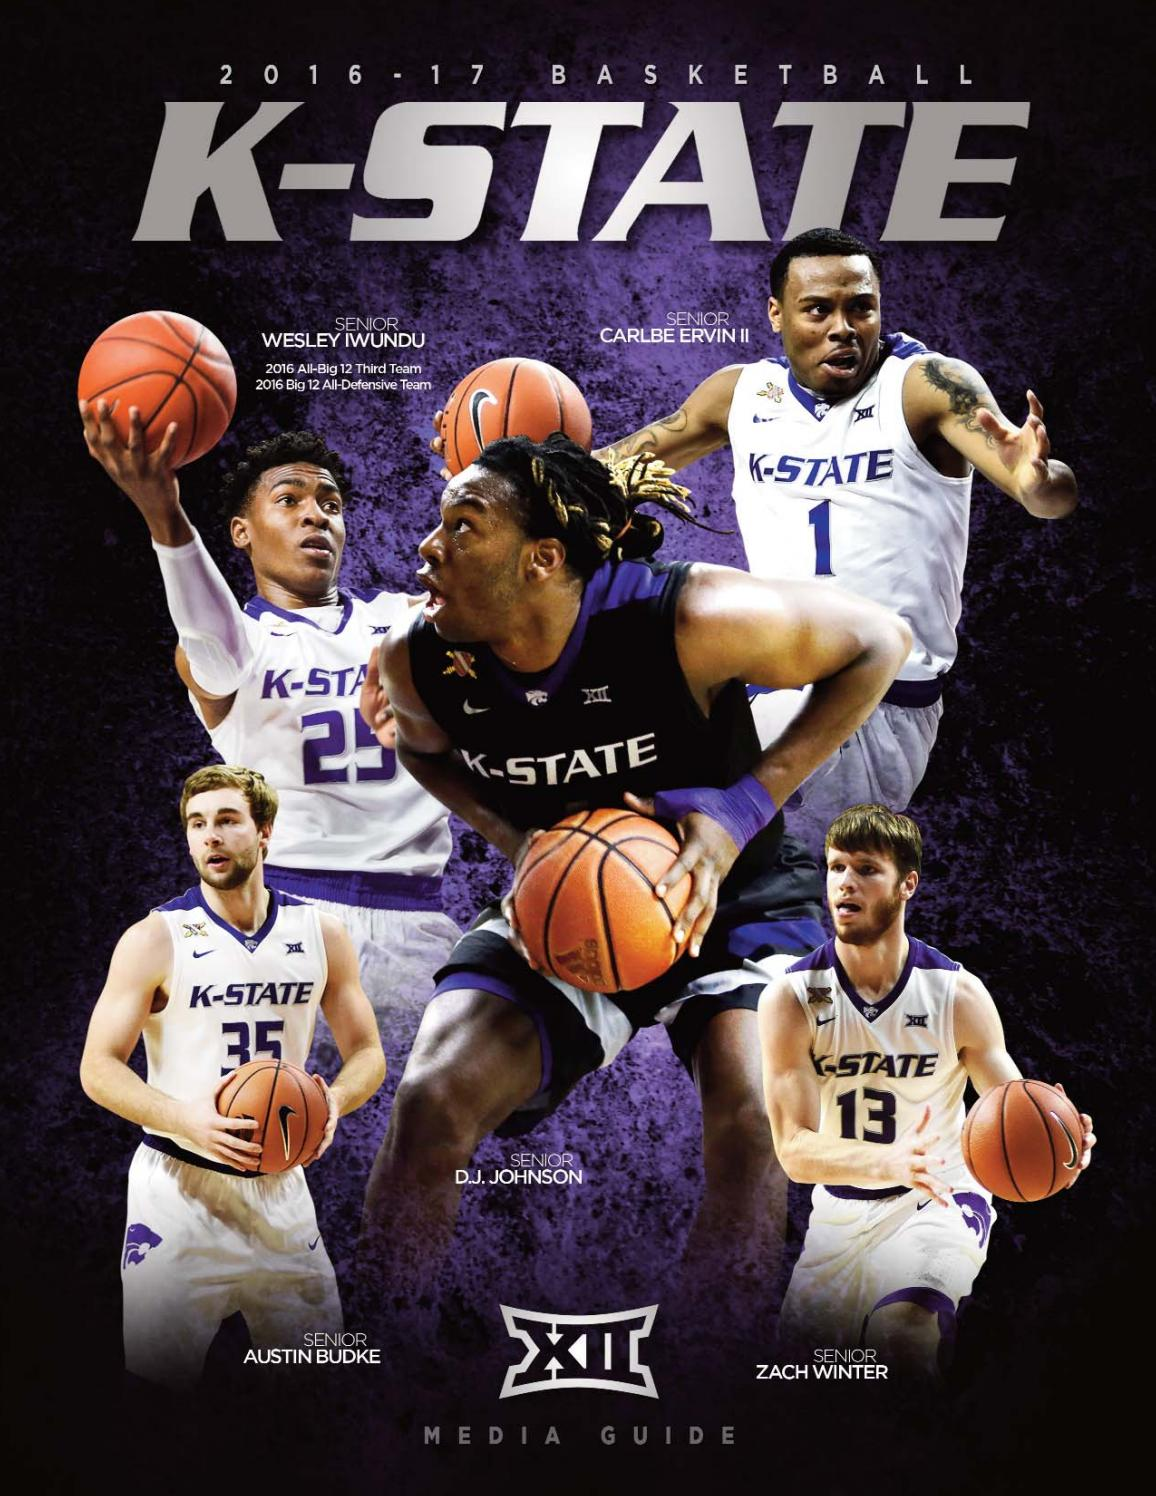 huge selection of aff87 b55a6 2016-17 Kansas State Men s Basketball Guide by K-State Athletics - issuu